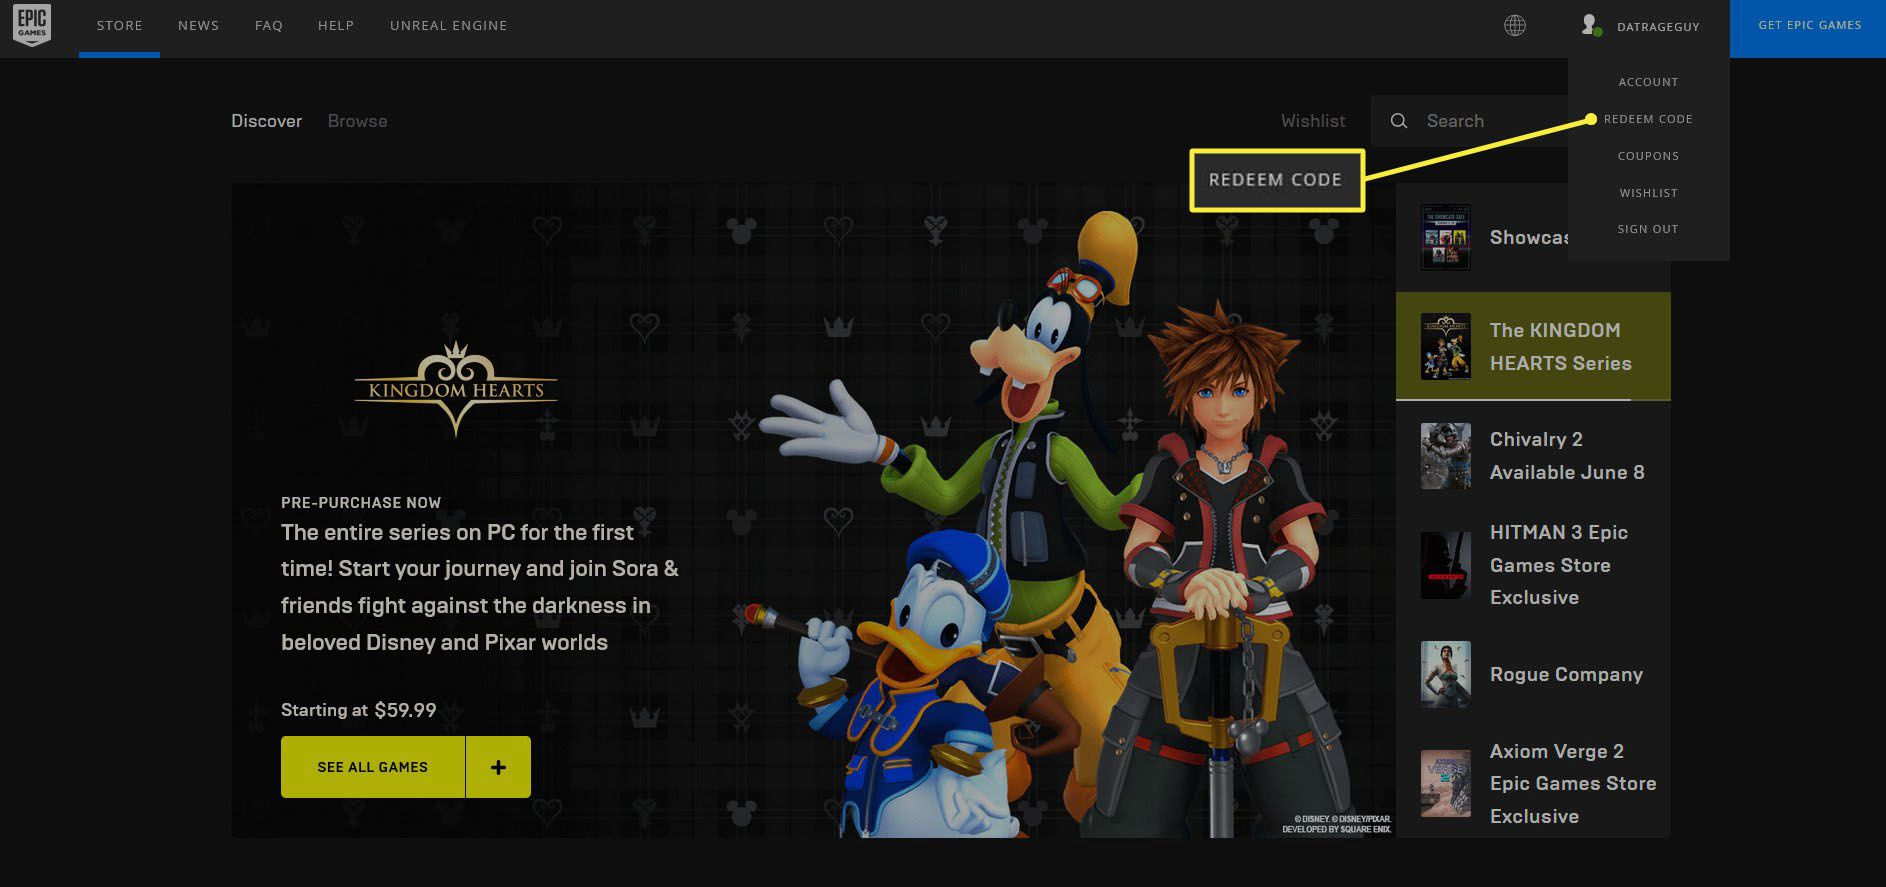 The account options list on the Epic Games Store website.